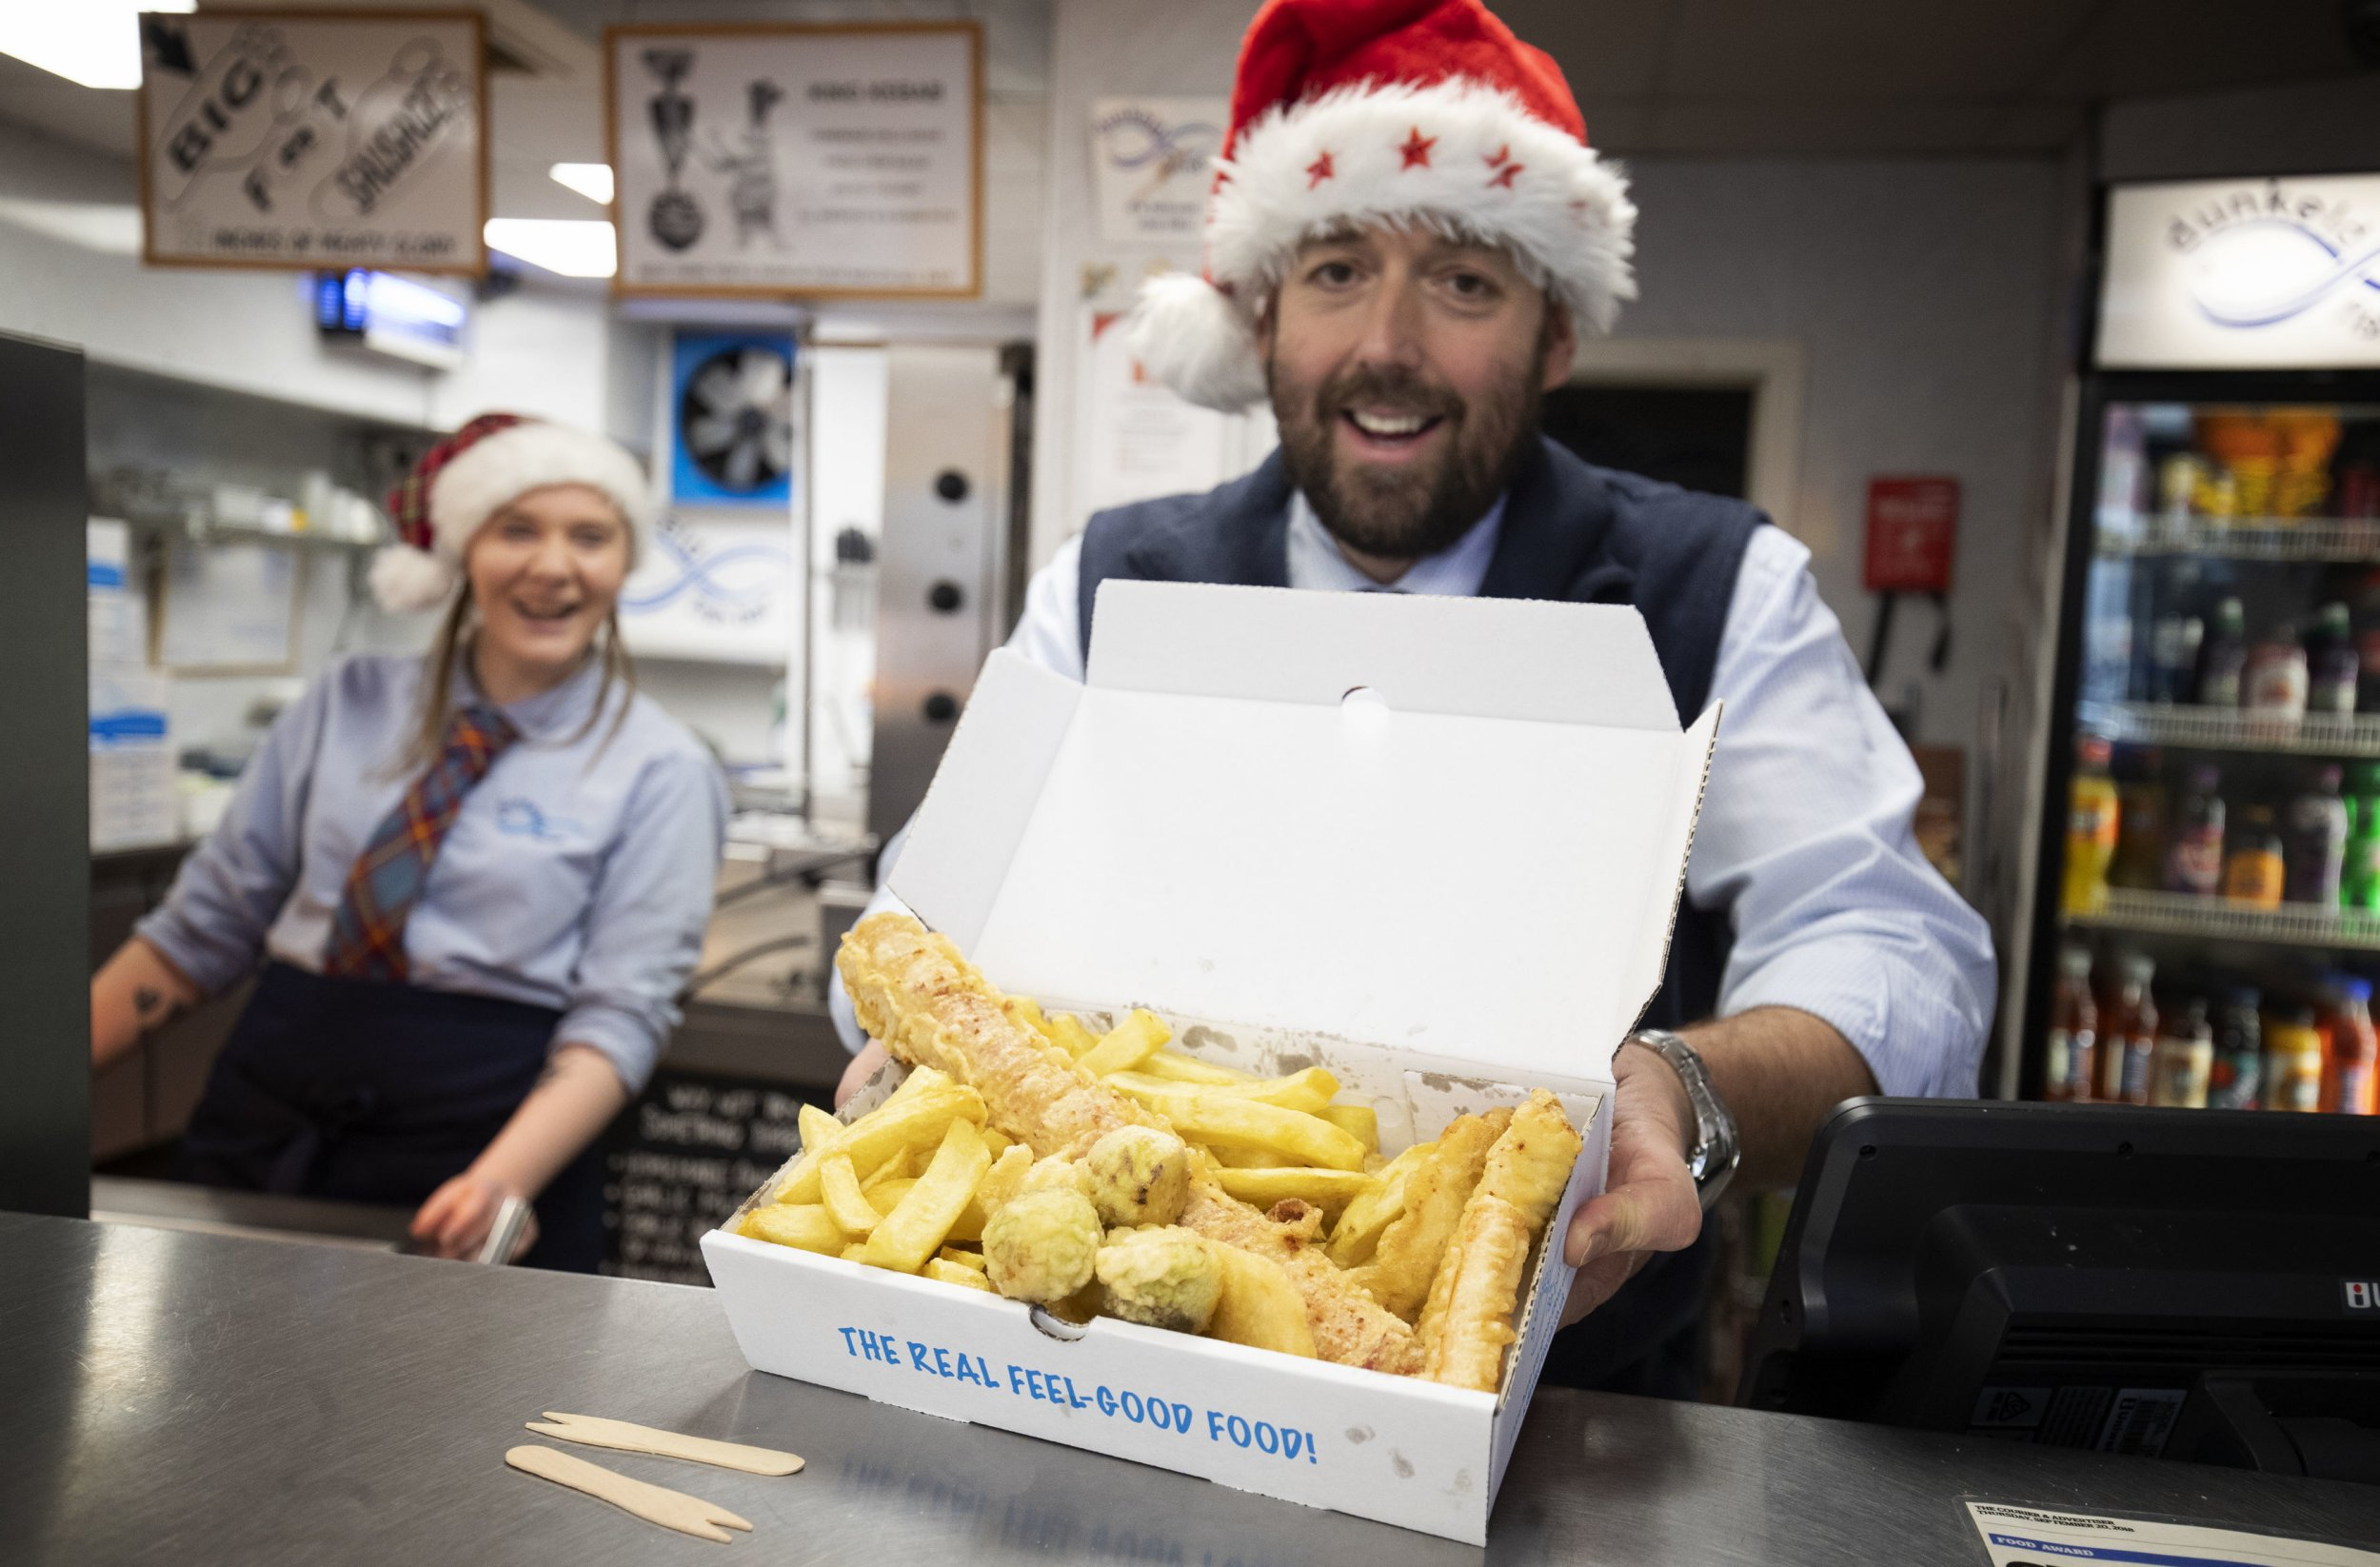 Chelsea McGowan and owner Scott Davie serve up a deep-fried Christmas dinner, complete with turkey, parsnips and brussels sprouts, which is on the menu during the festive season at Dunkeld Fish Bar in Dunkeld, Perthshire. PRESS ASSOCIATION Photo. Picture date: Sunday December 9, 2018. Photo credit should read: Jane Barlow/PA Wire